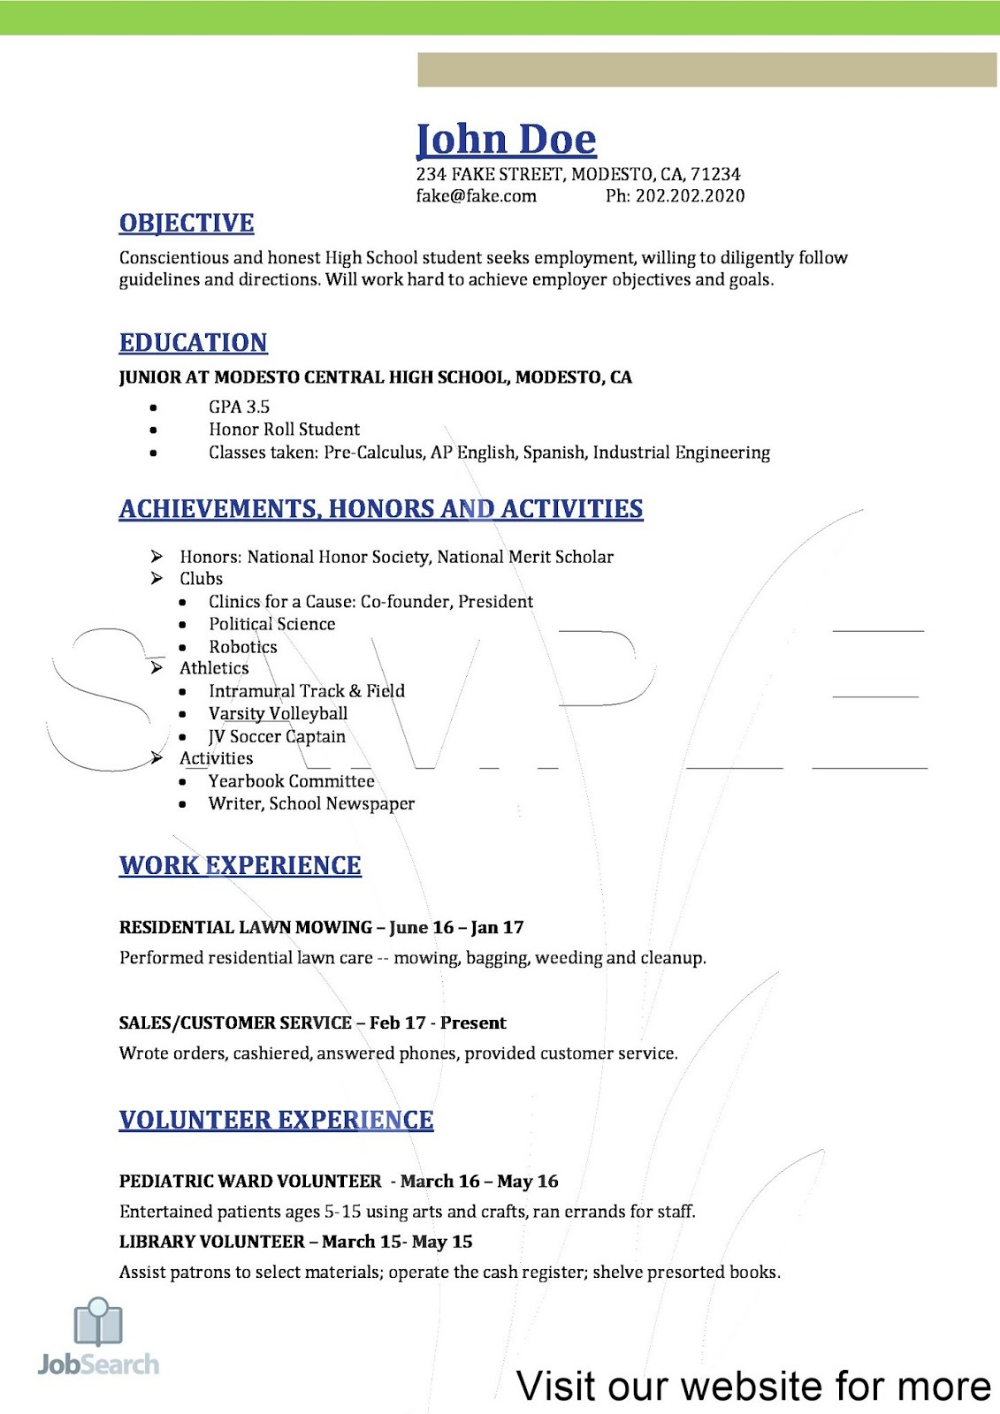 Resume For High School Students Resume For Example High School